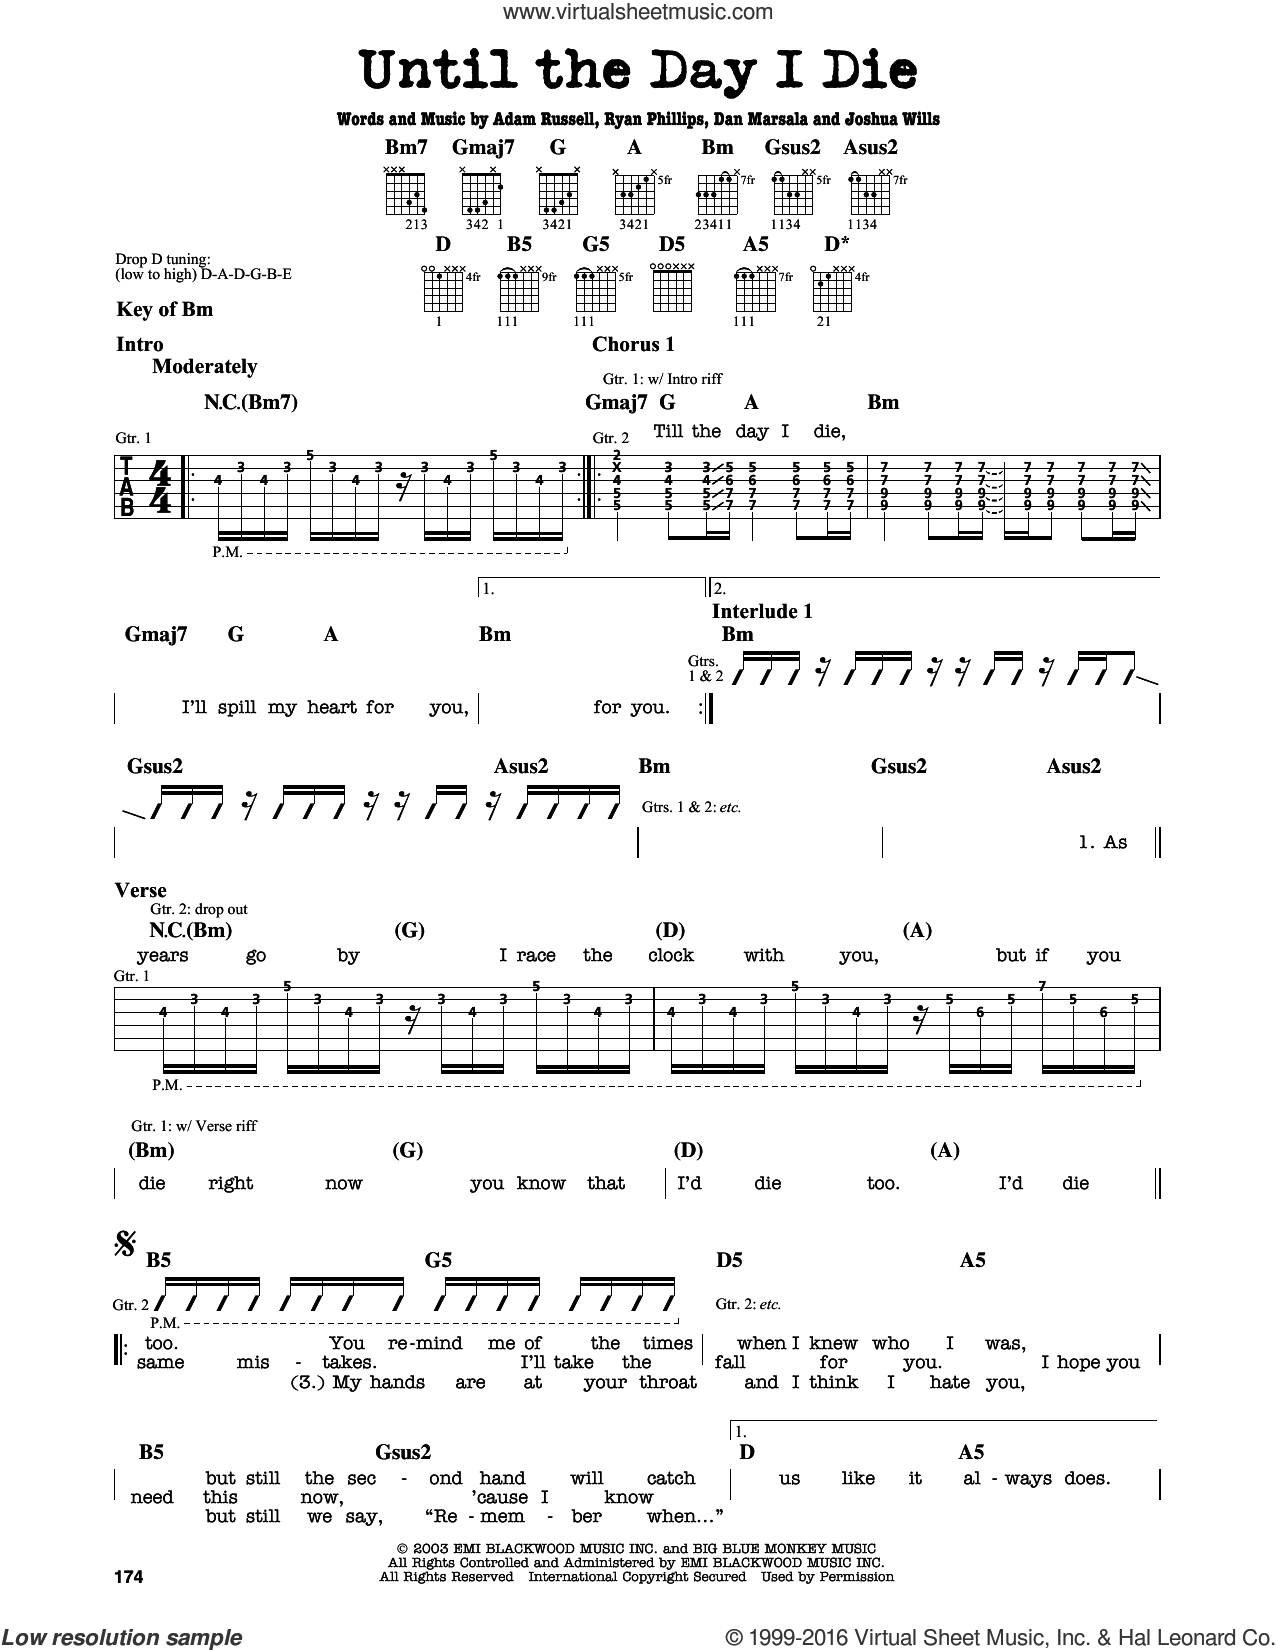 Until The Day I Die sheet music for guitar solo (lead sheet) by Ryan Phillips